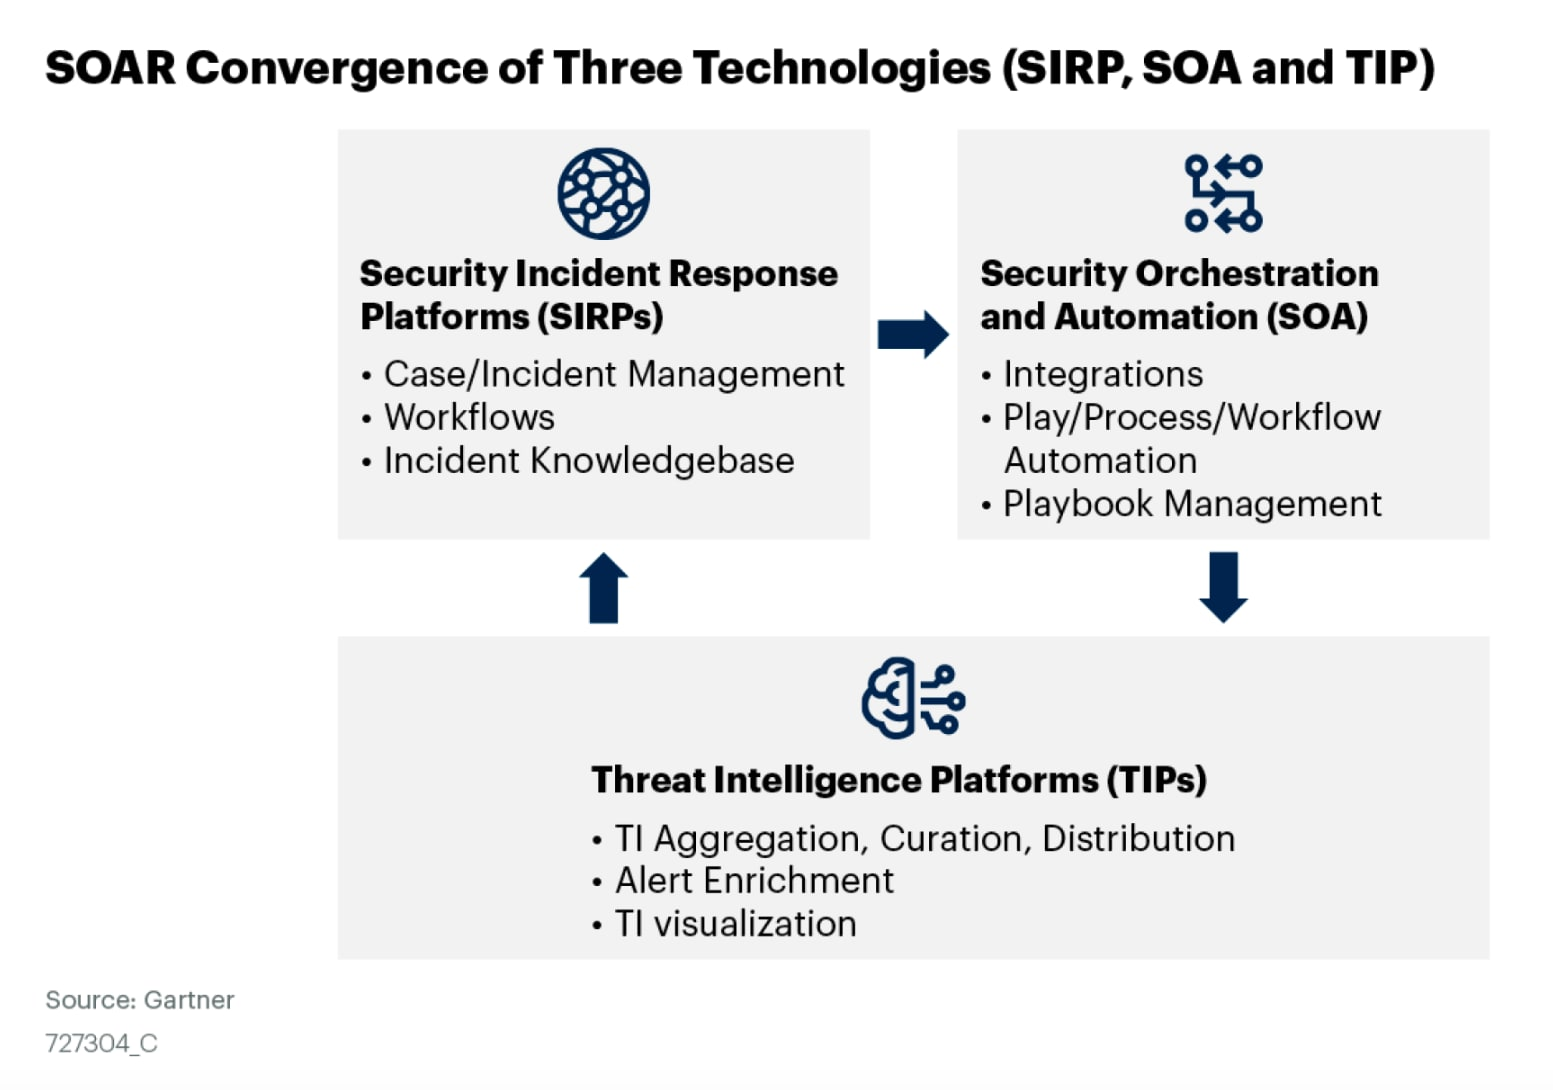 The screenshot shows how SOAR solutions converge three technologies: Security Incident Response Platforms (SIRP) (case/incident management, workflows, incident knowledgebase), Security Orchestration and Automation (SOA) (integrations, play/process/workflow automation, playbook management) and Threat Intelligence Platforms (TIPs) (TI Aggregation, curation, distribution, alert enrichment, TI visualization). Source: Gartner